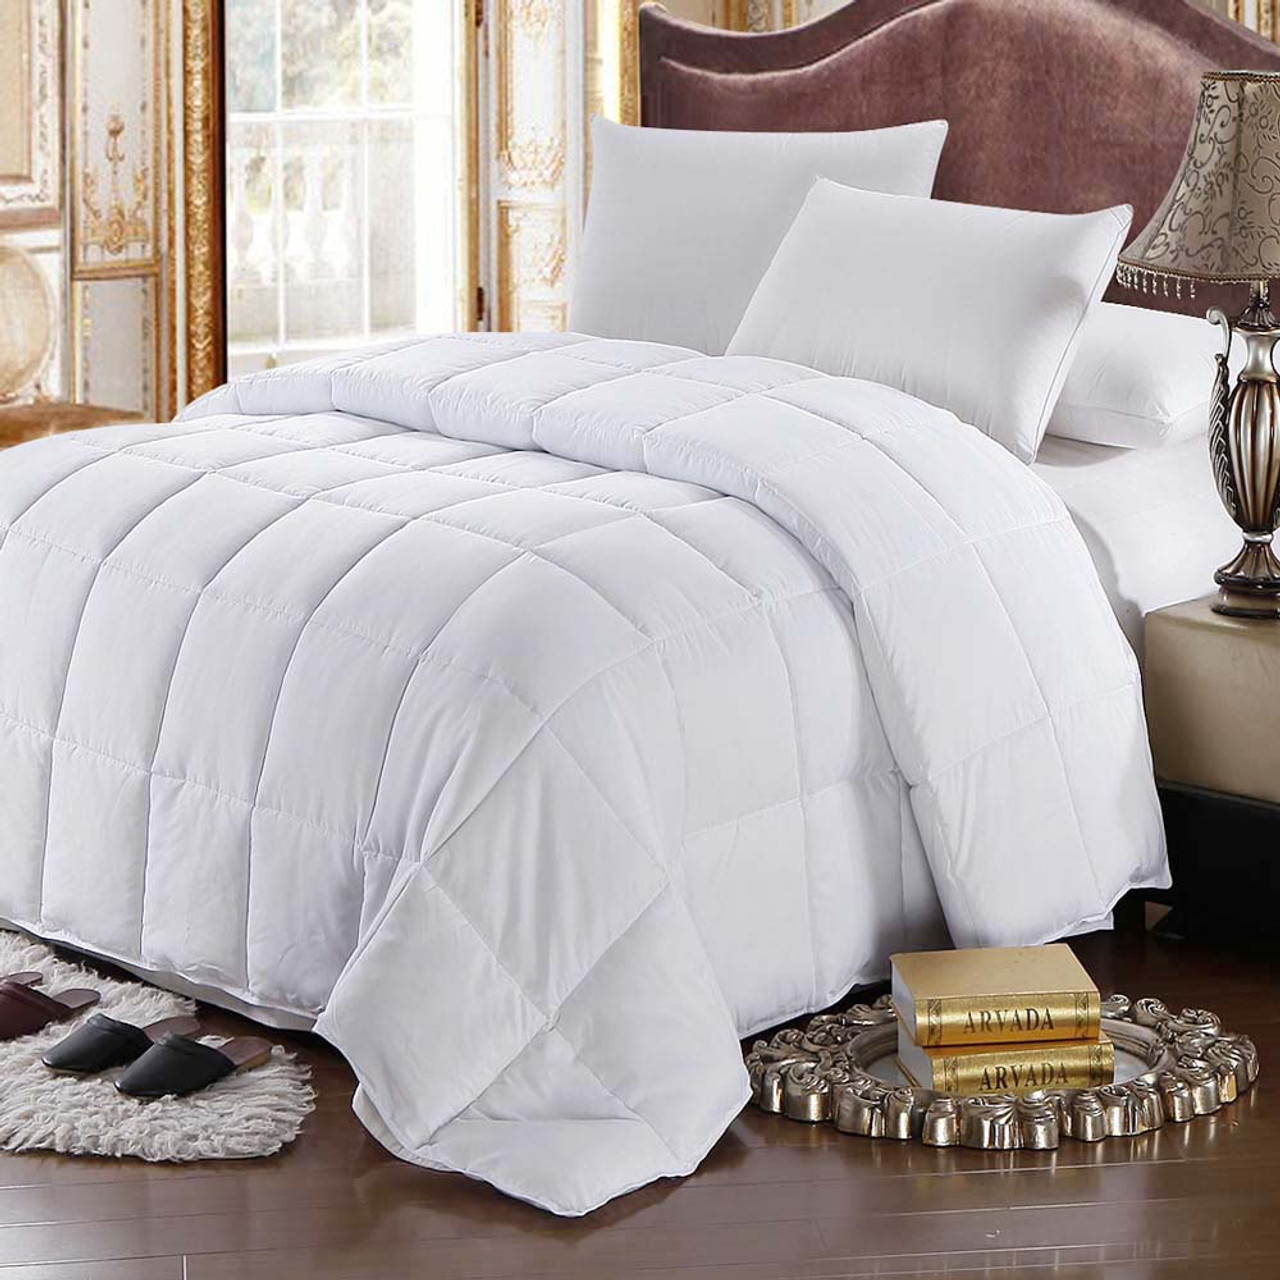 duvet bedding insert season shell comforter duvets all feather cvb corner cotton stiched ties luxury box zoom comforters tiesbox queen goose with down op white